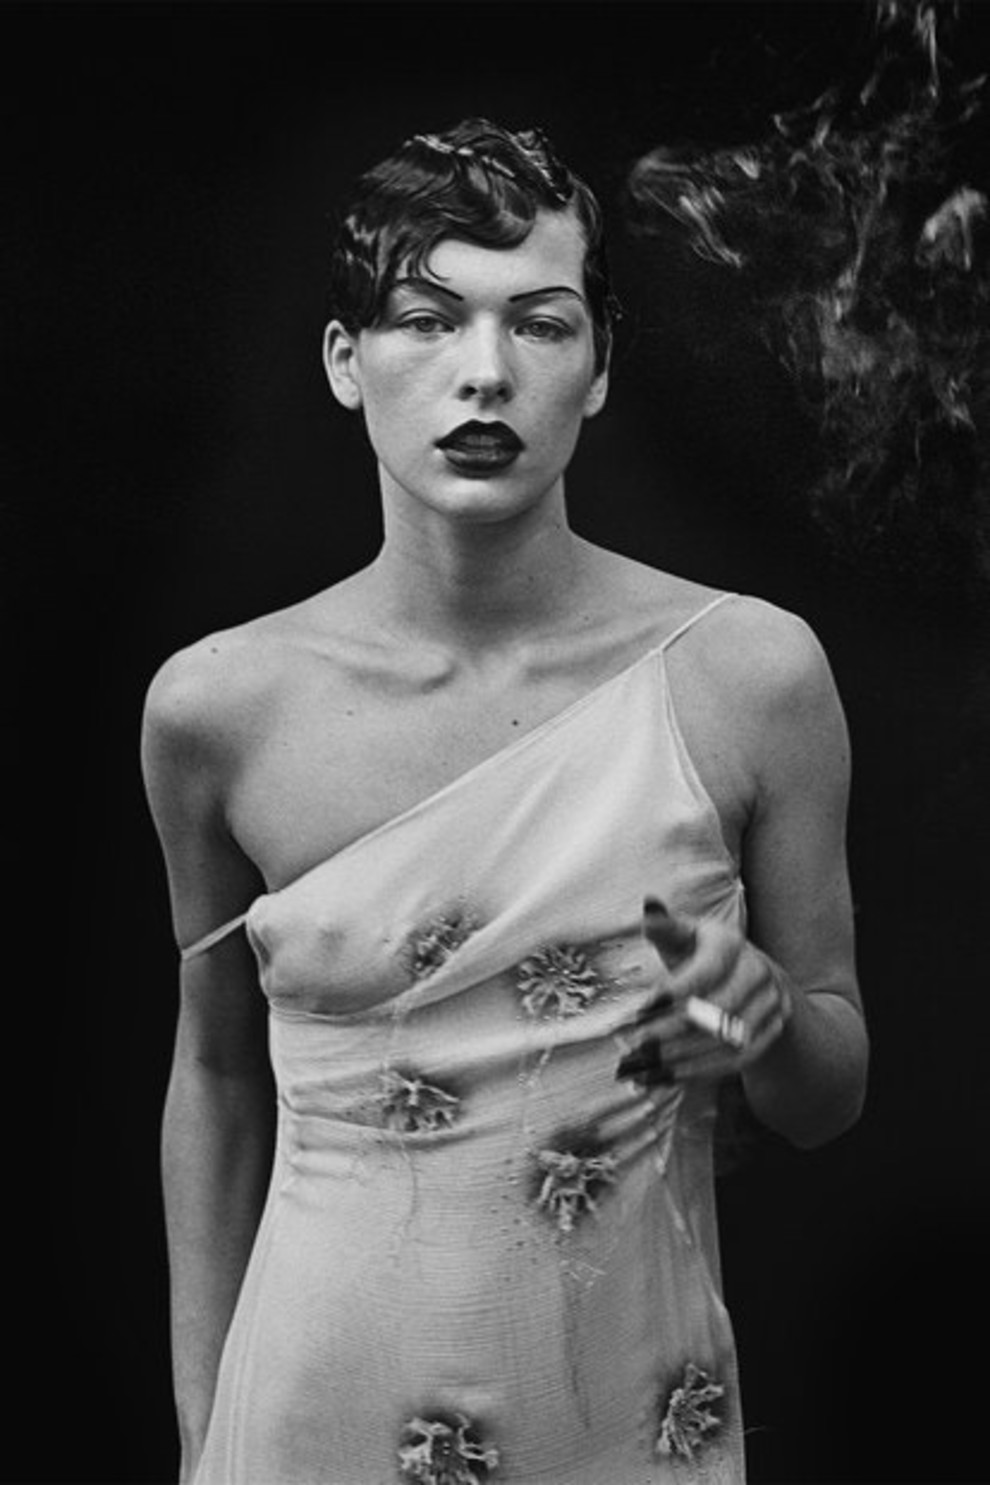 Peter Lindbergh's latest book Untold Stories